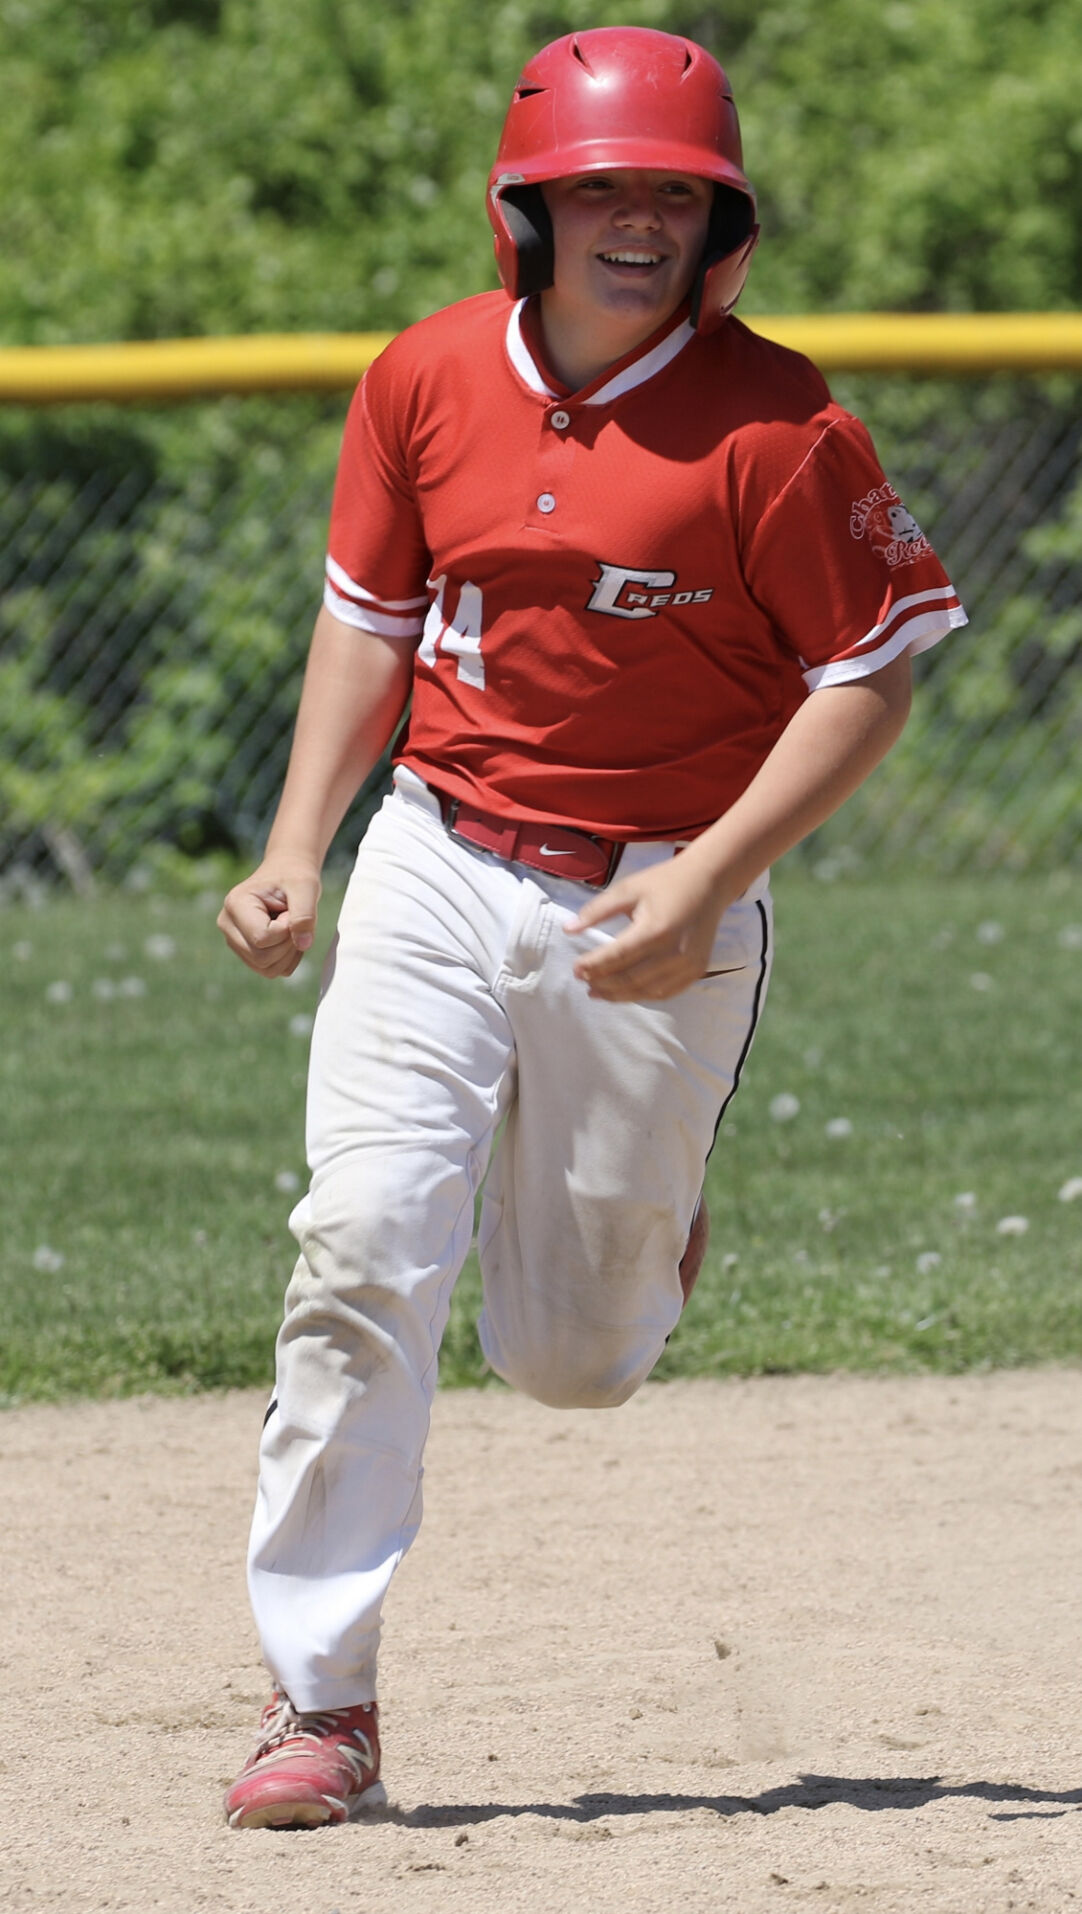 TRAVEL BASEBALL: Super stands out in PDC Tournament